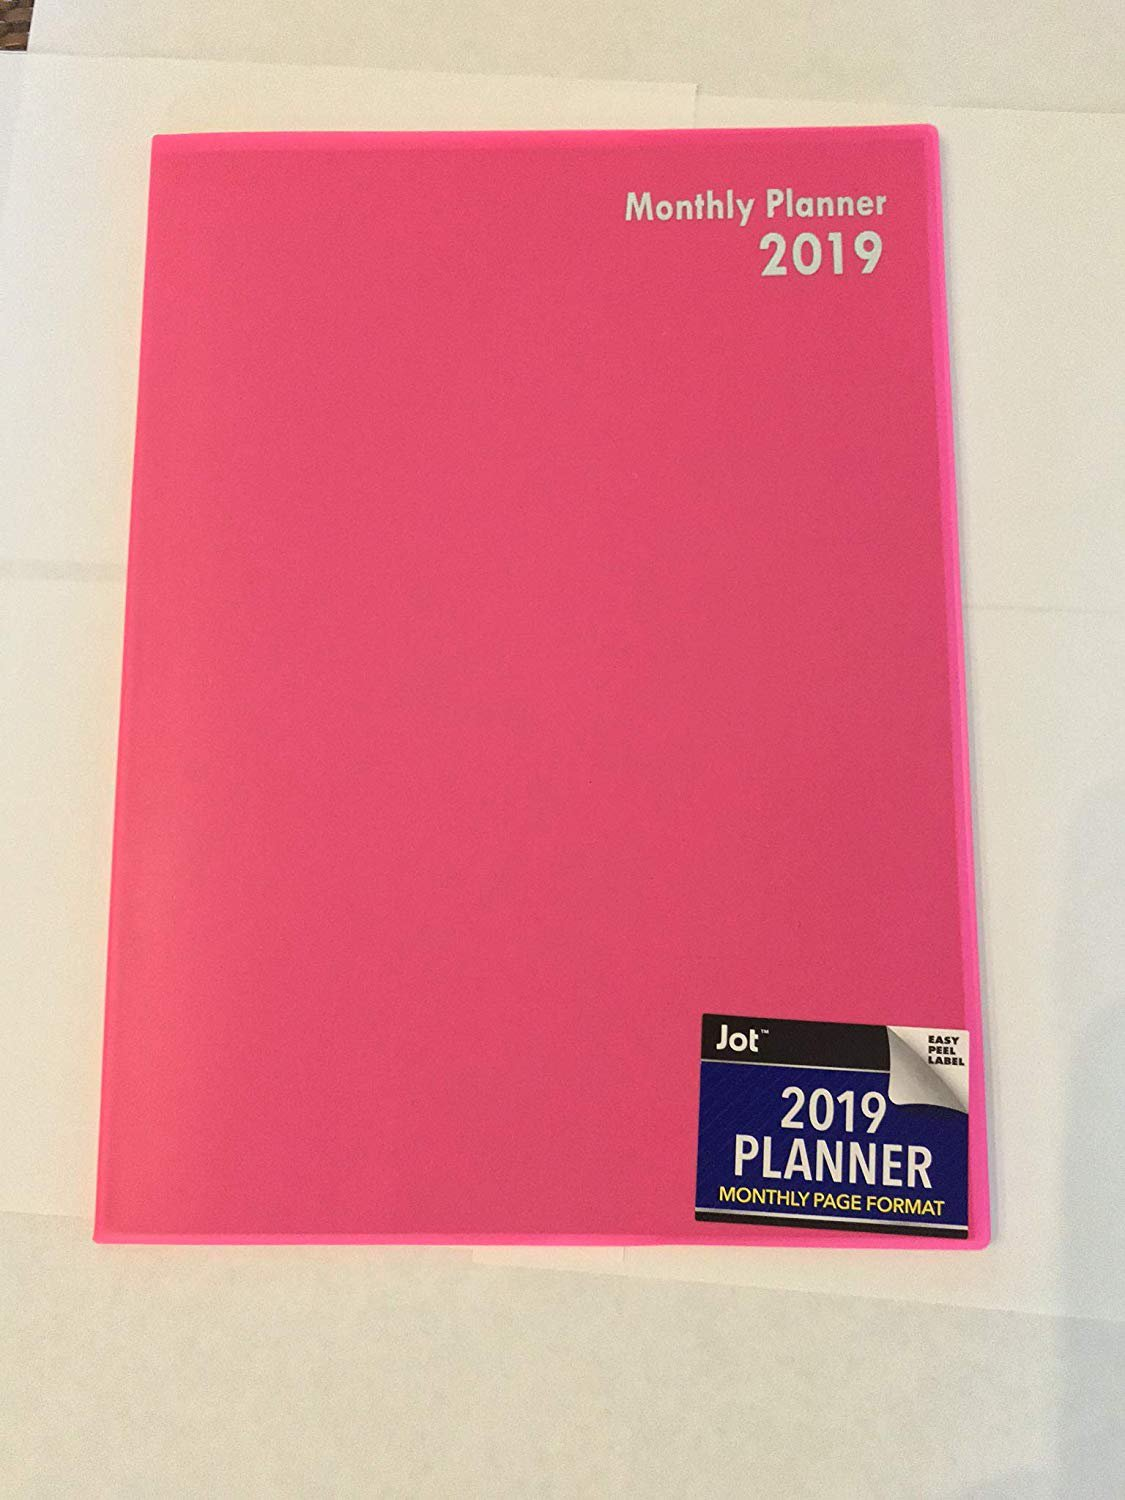 2019 Planner, Monthly Page Format (Pink)